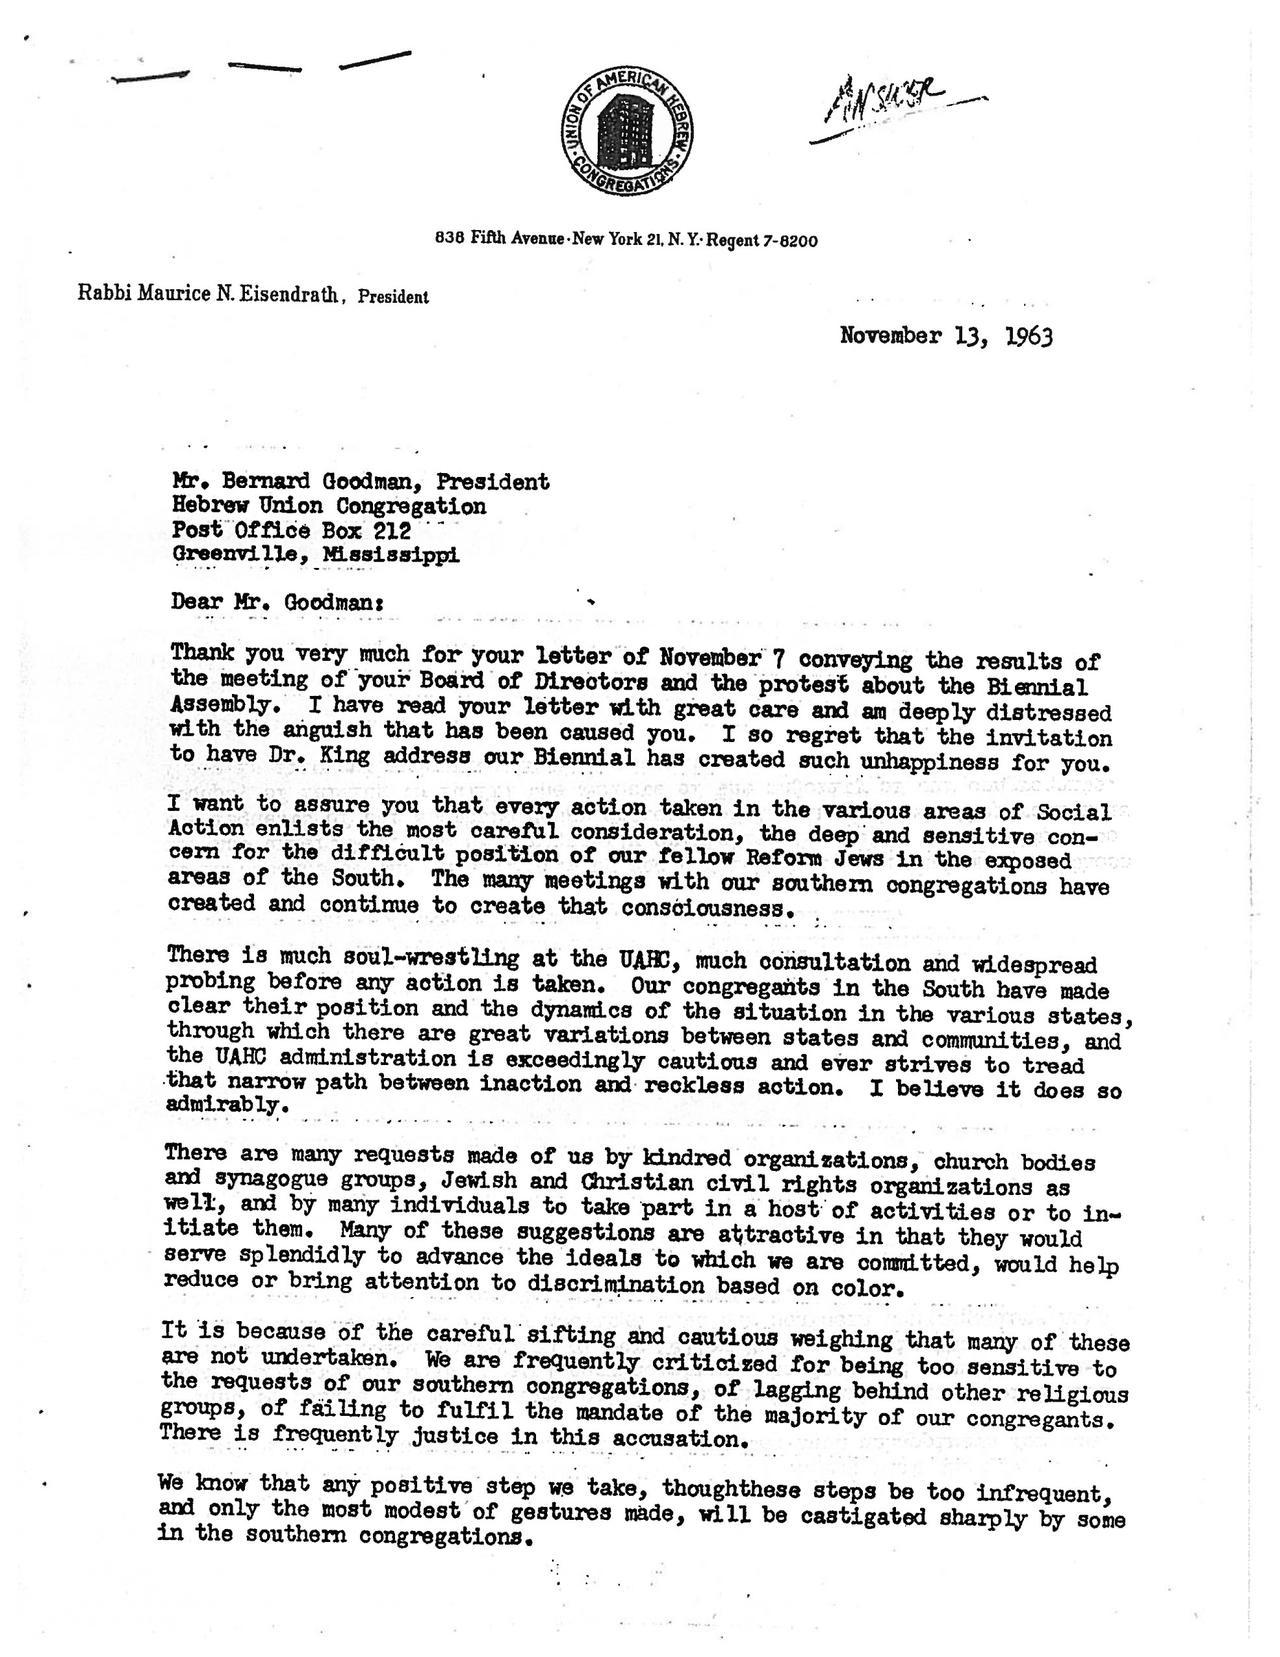 Letter from Rabbi Eisendrath to Bernard Goodman, November 13, 1963